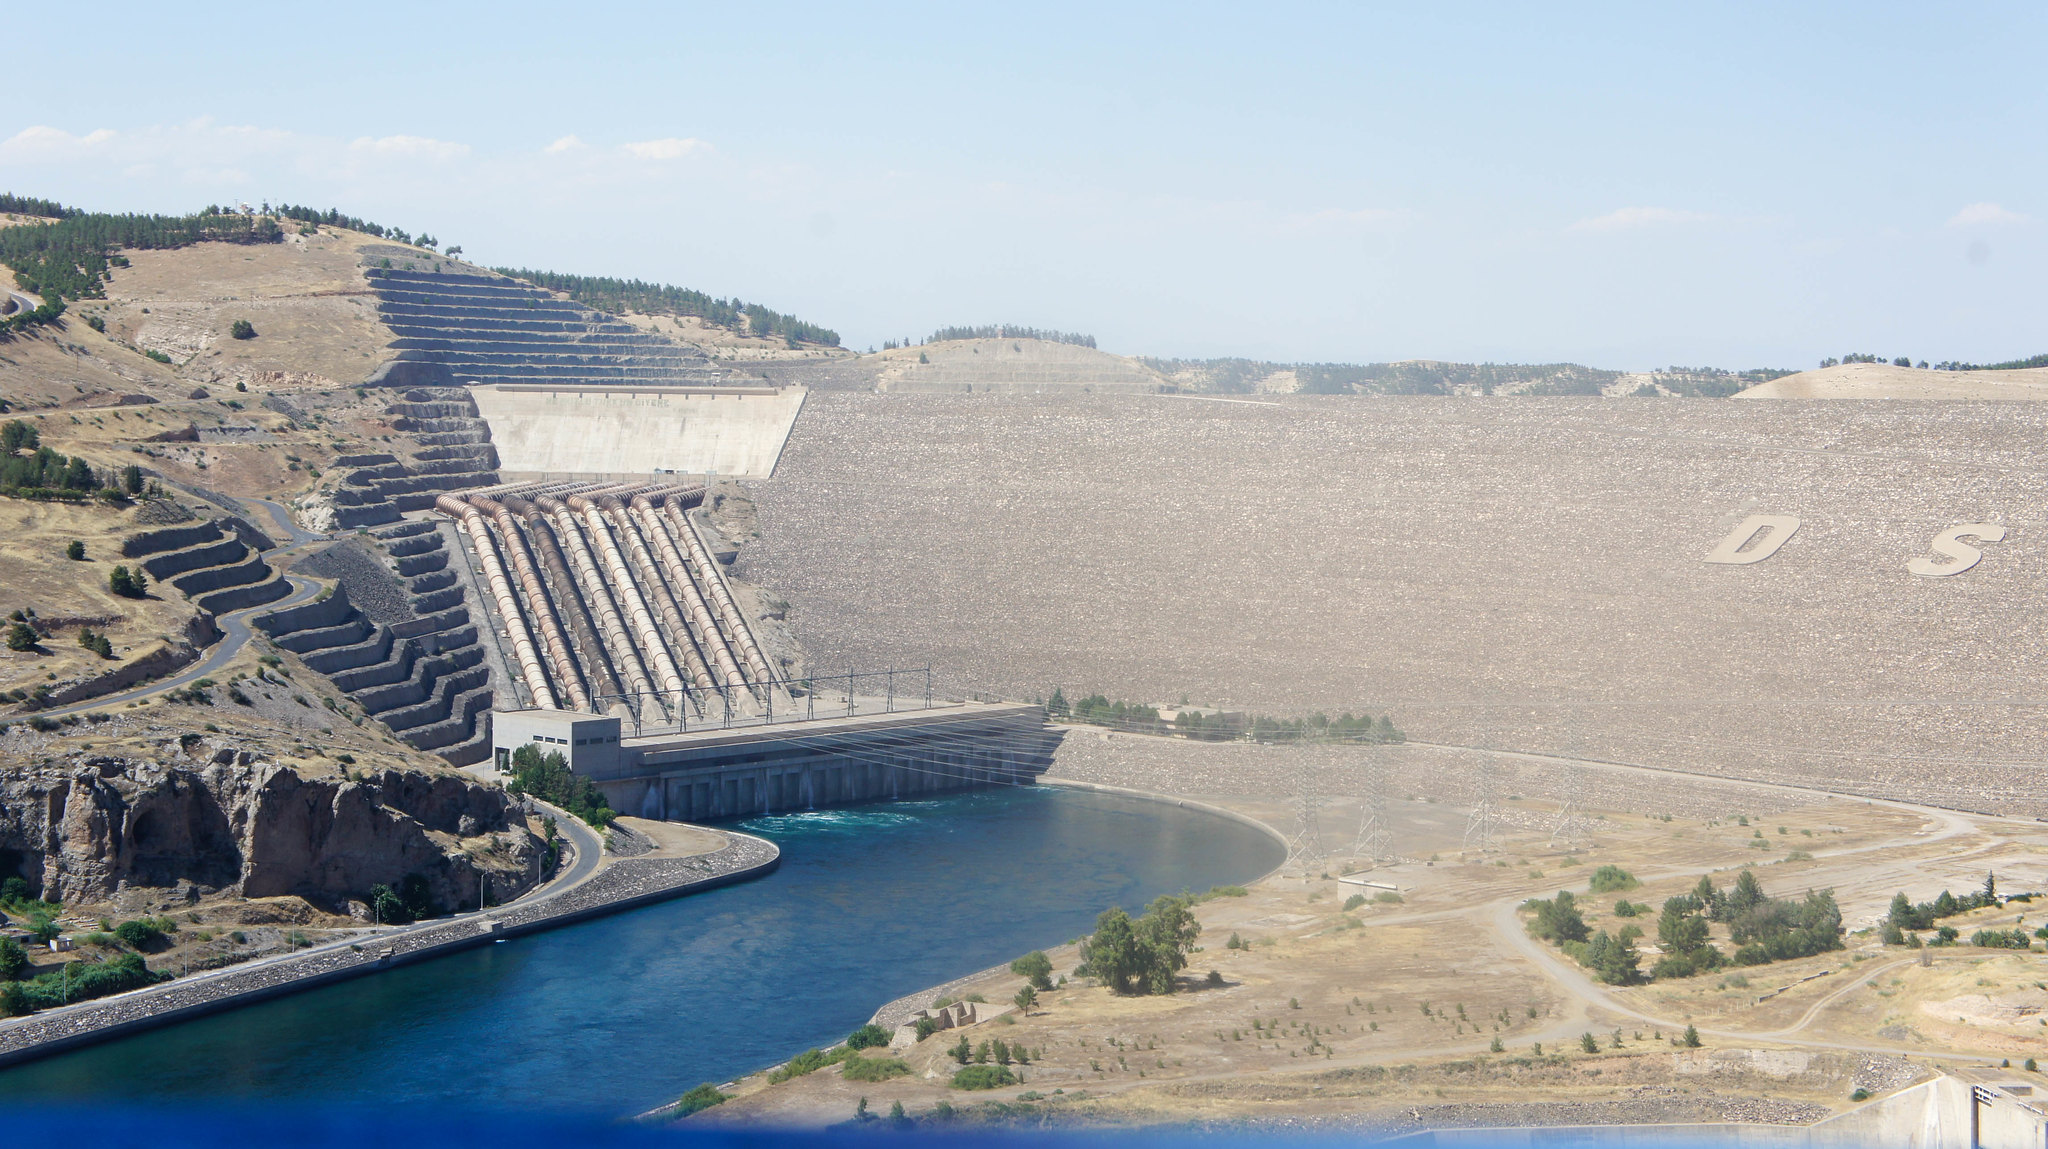 The Atatürk Dam - now also somewhat of a local landmark